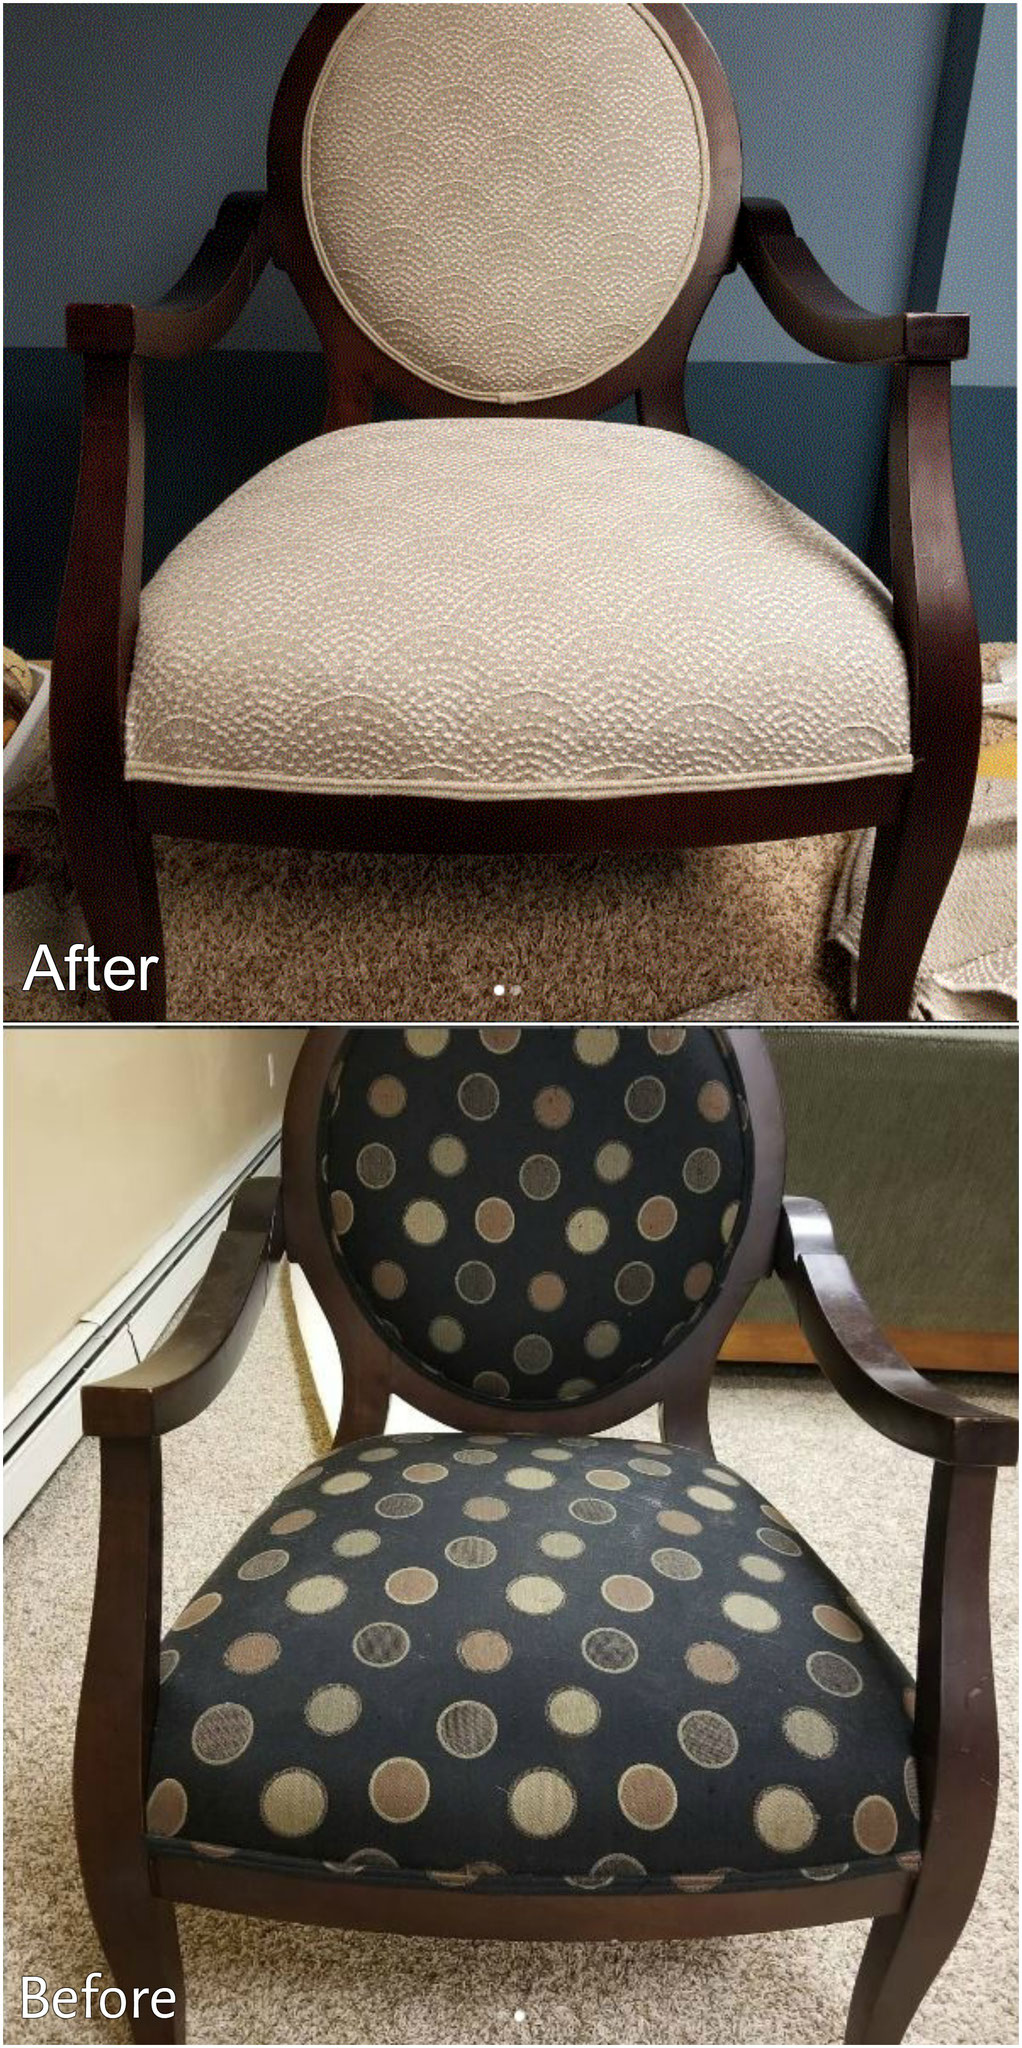 Light and Bring reupholstered chairs